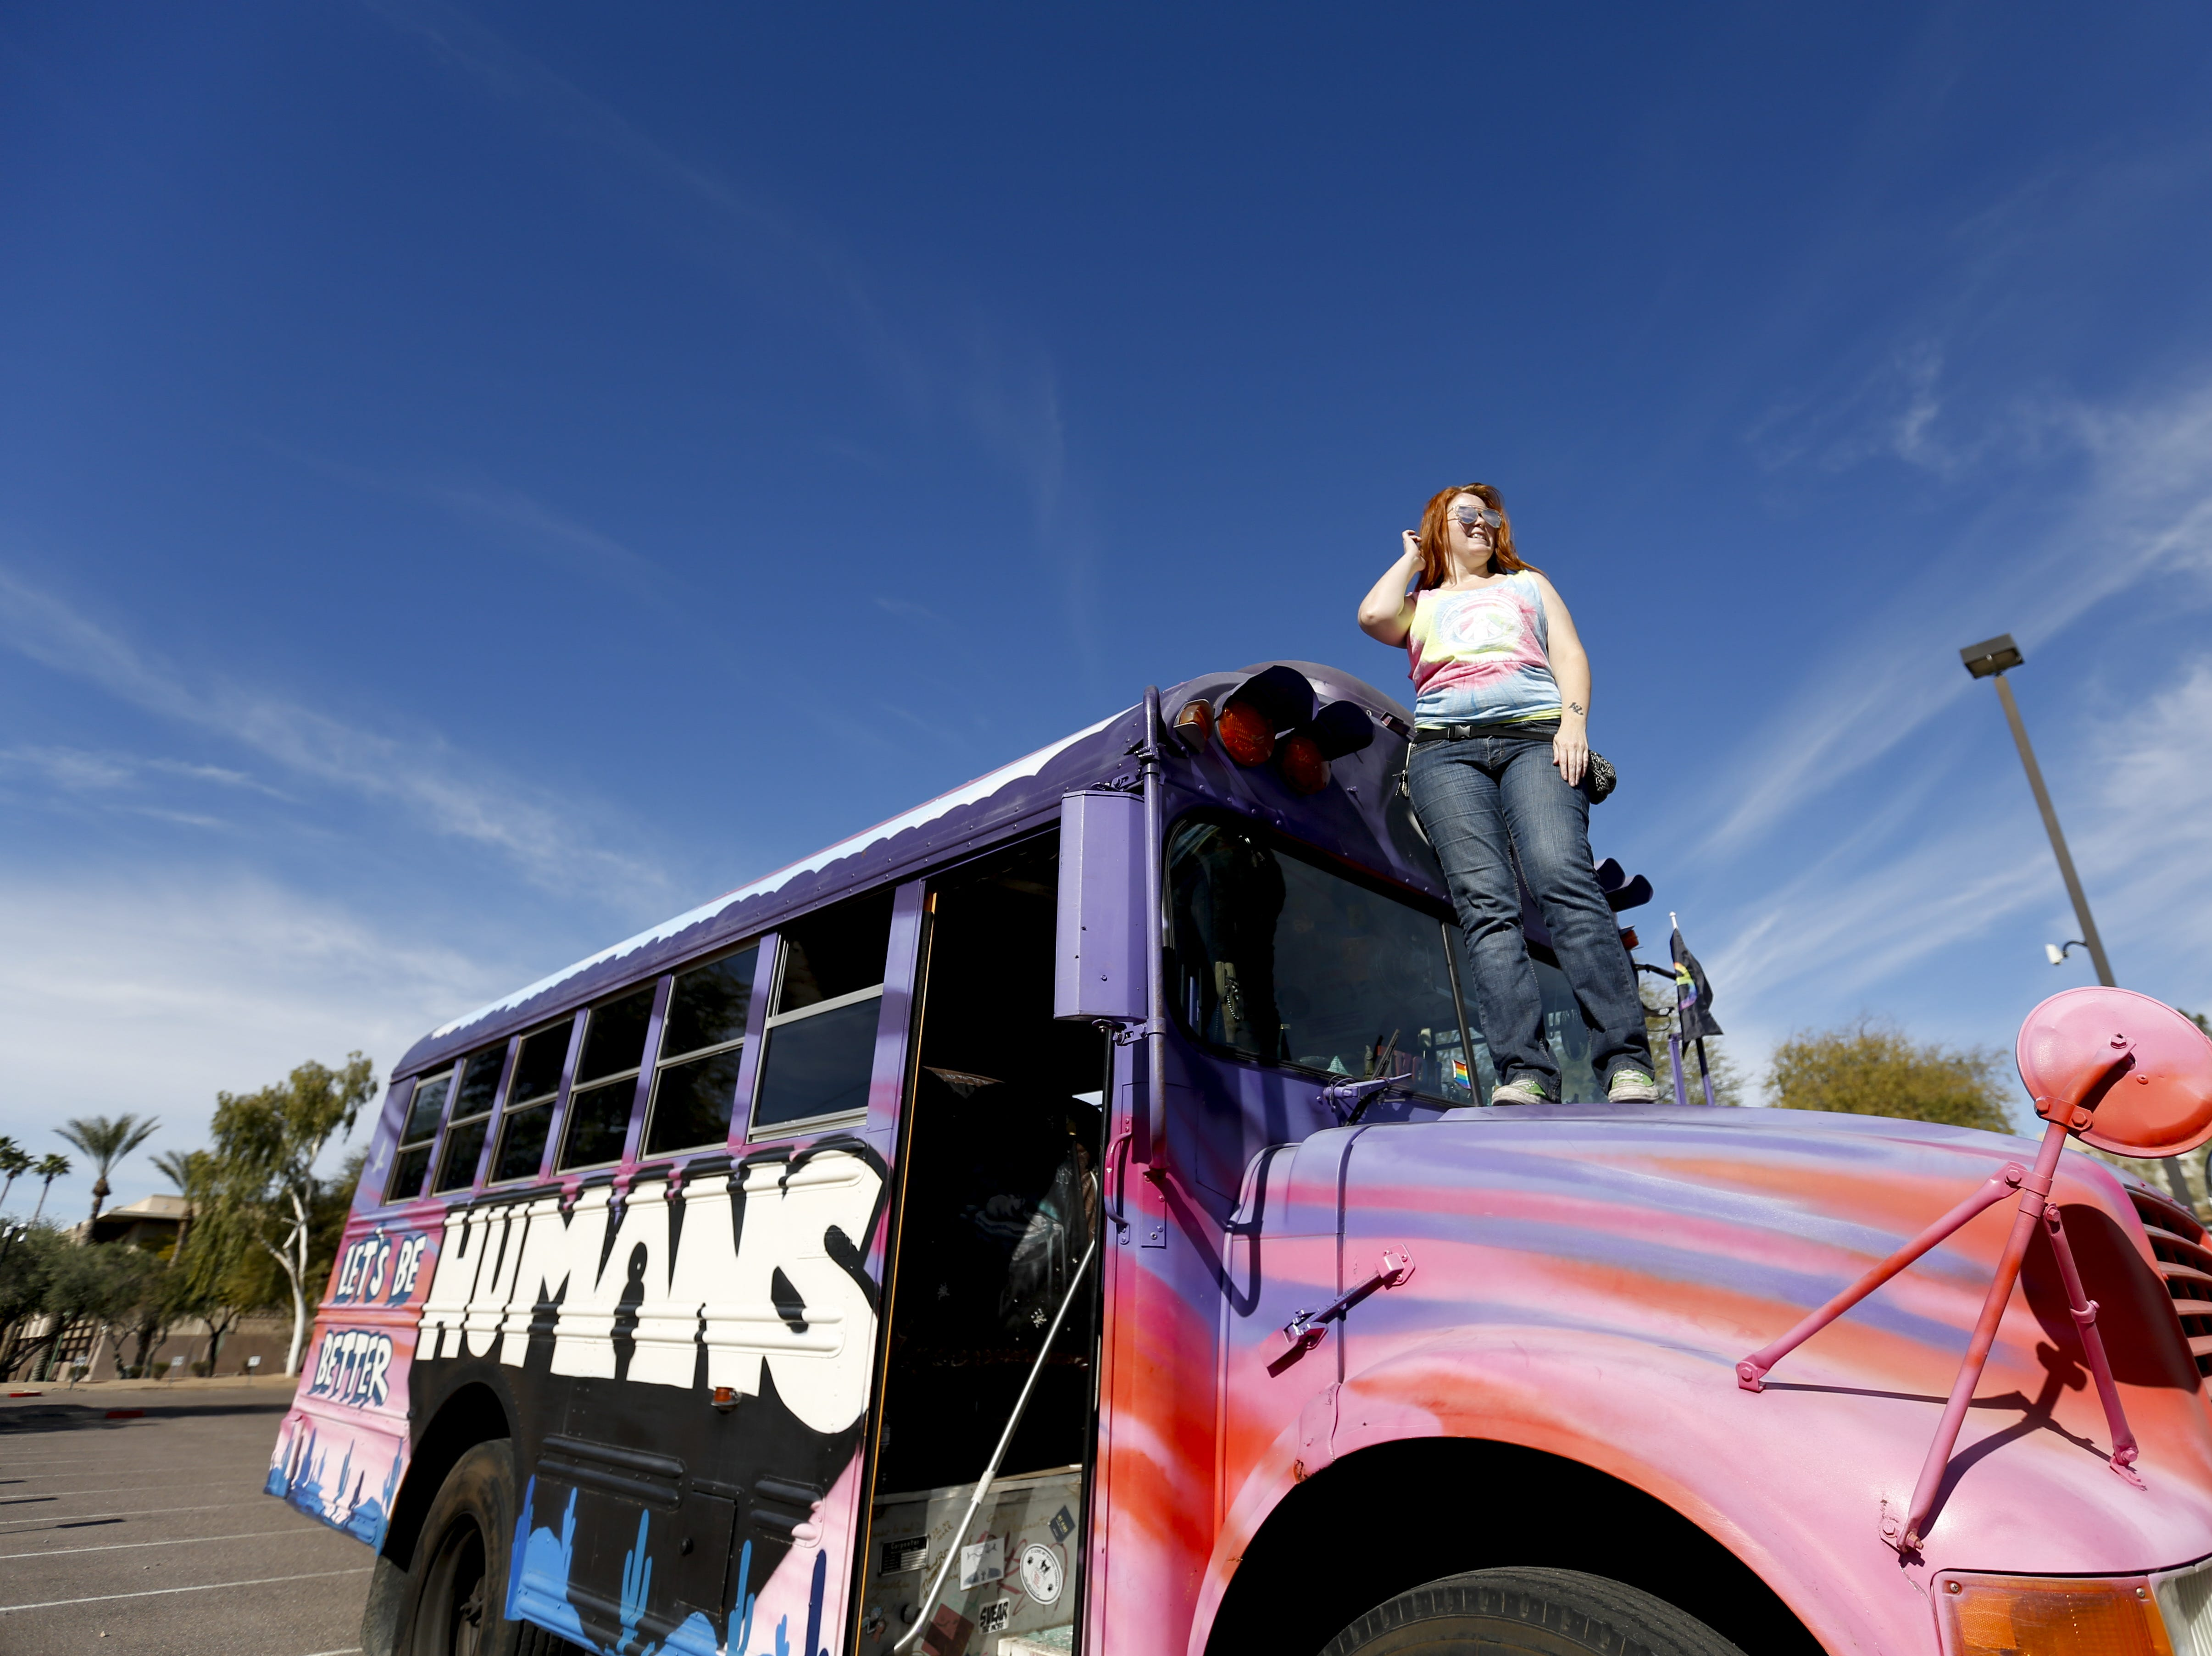 BC Brown, who works with the nonprofit Let's Be Better Humans, invites attendees to sign the inside of the bus at the Phoenix Women's March on Jan. 19, 2019, at the Arizona Capitol.